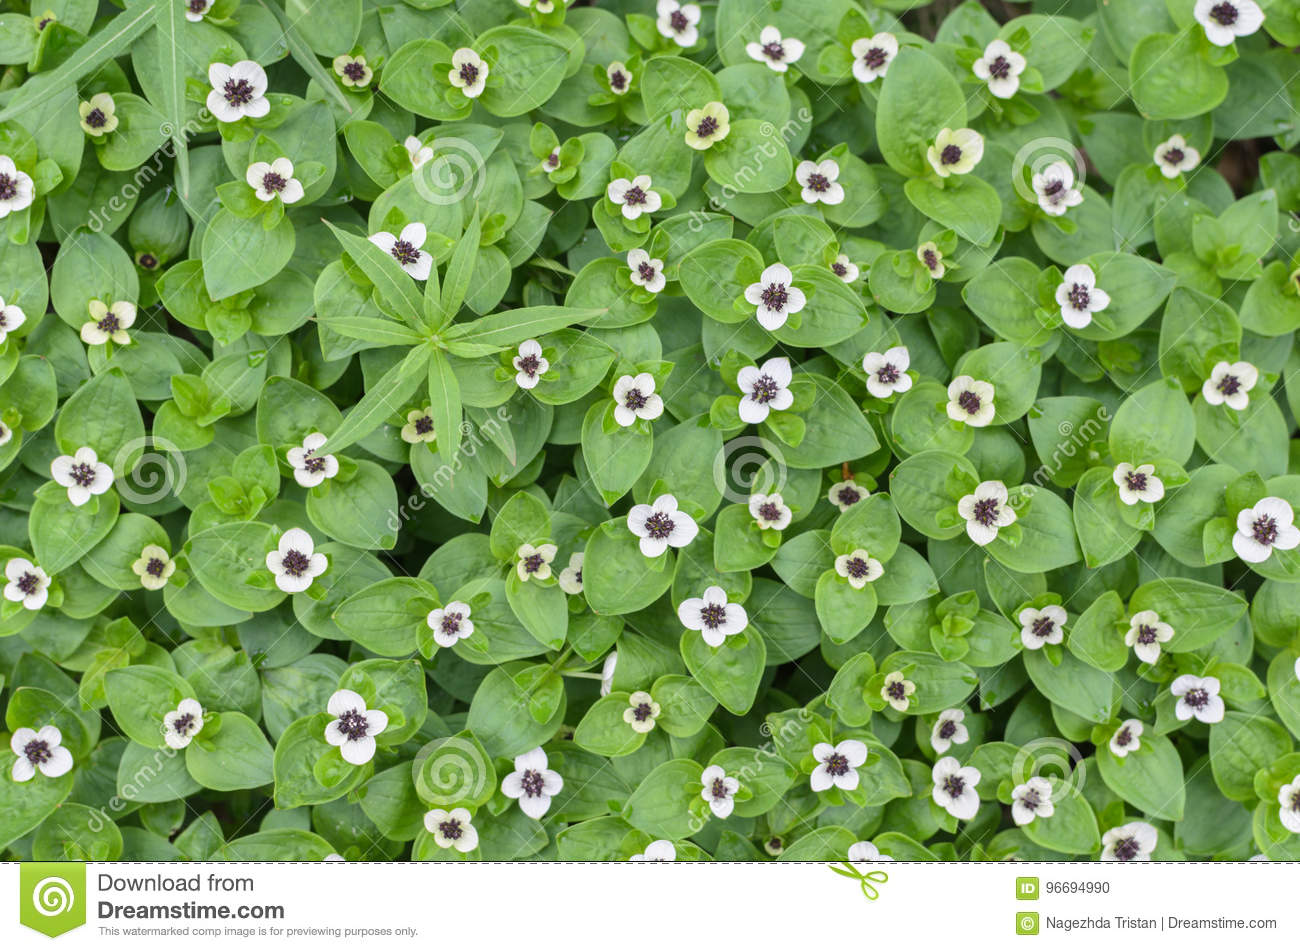 Background Of Green Plants With Small White Flowers Stock Photo